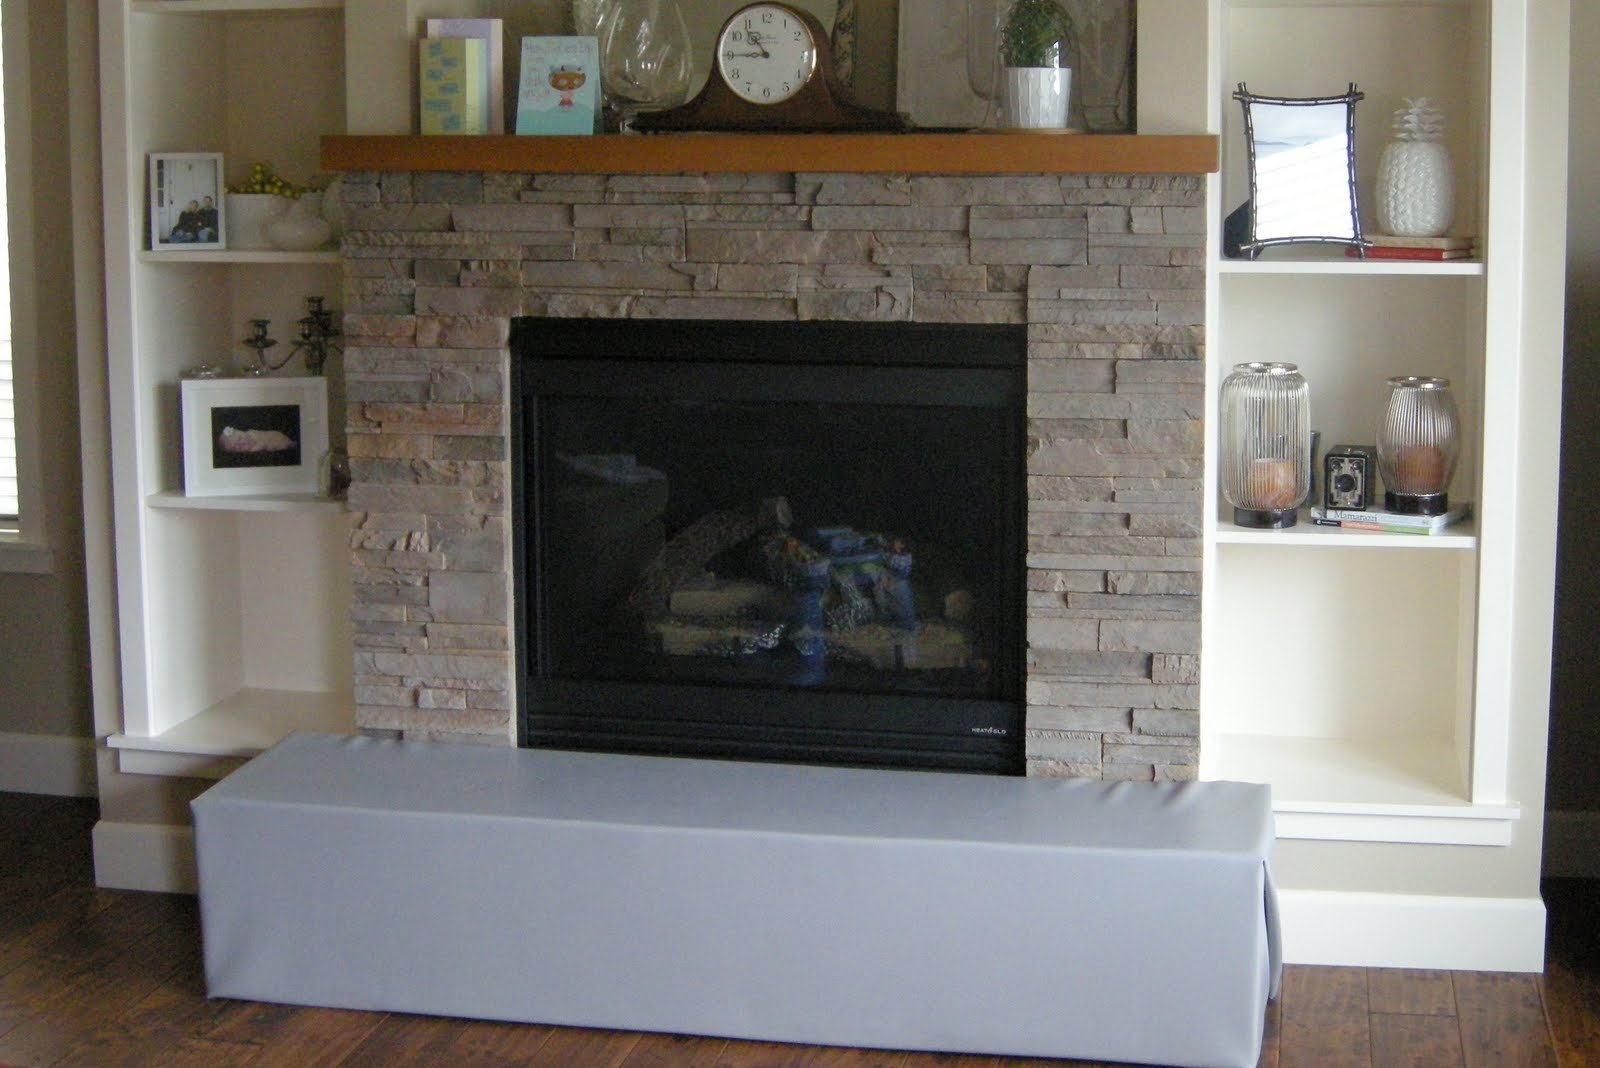 How To Babyproof A Fireplace Hearth